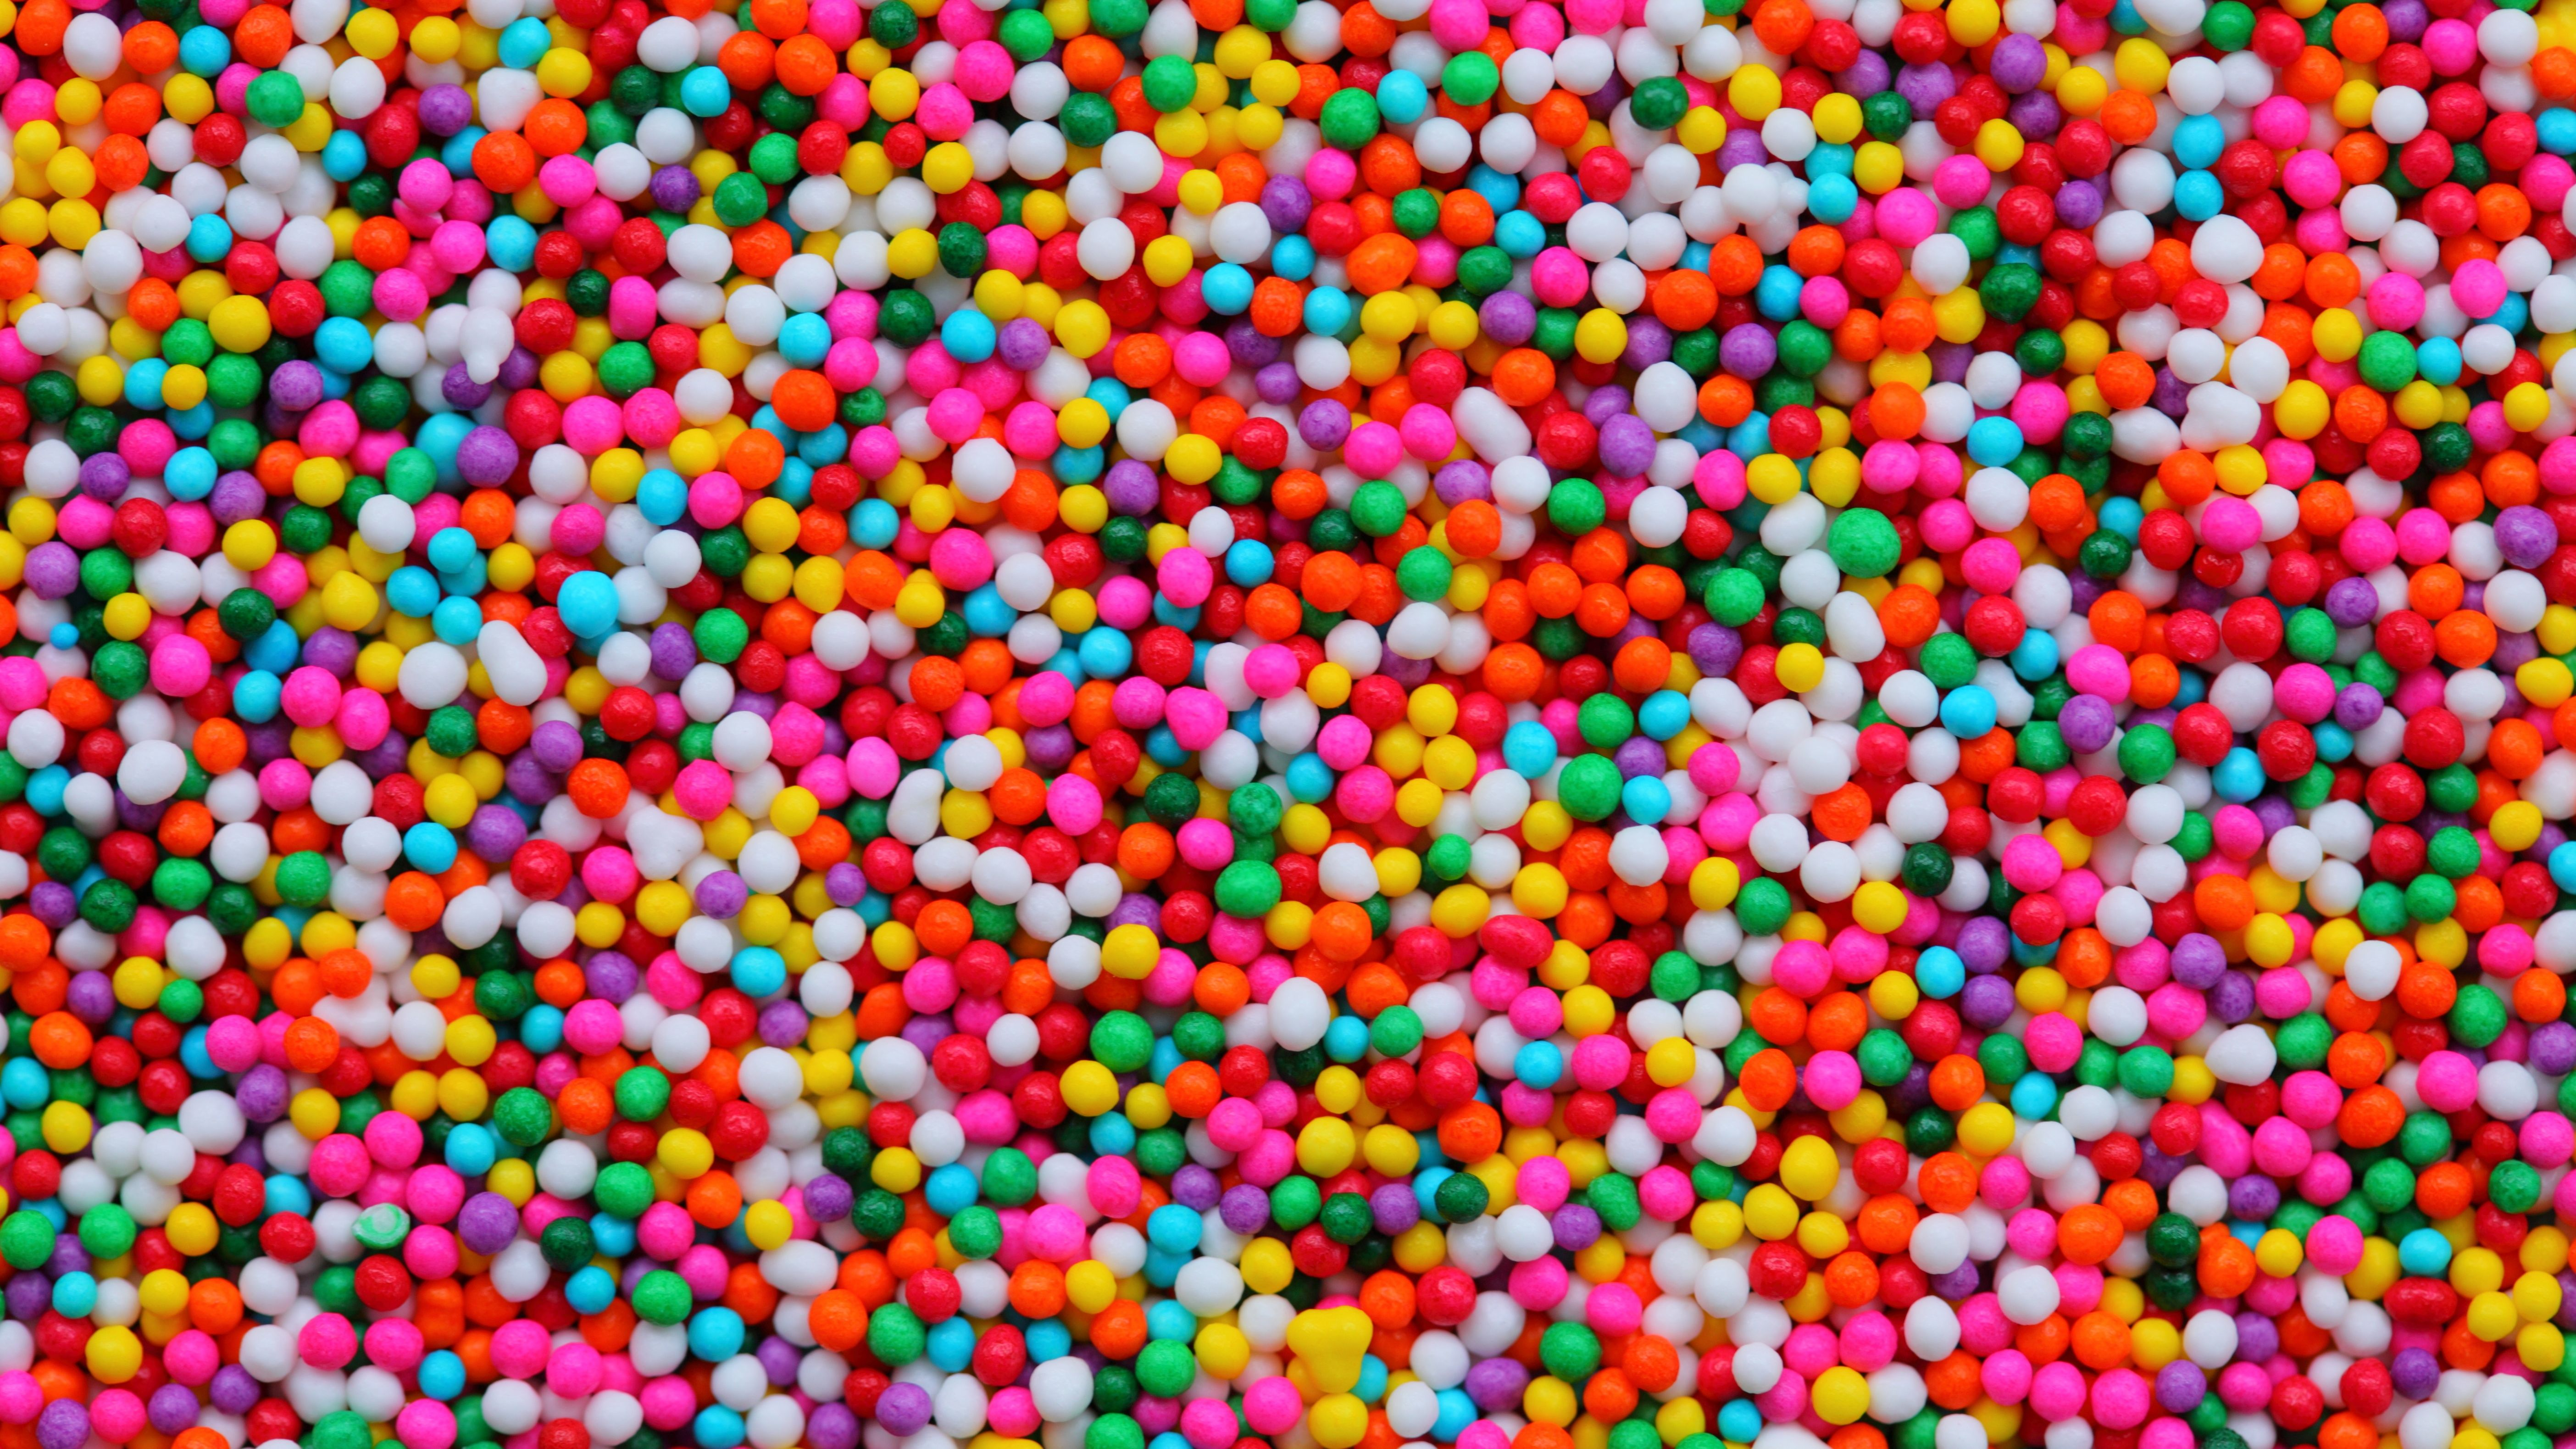 Candy.